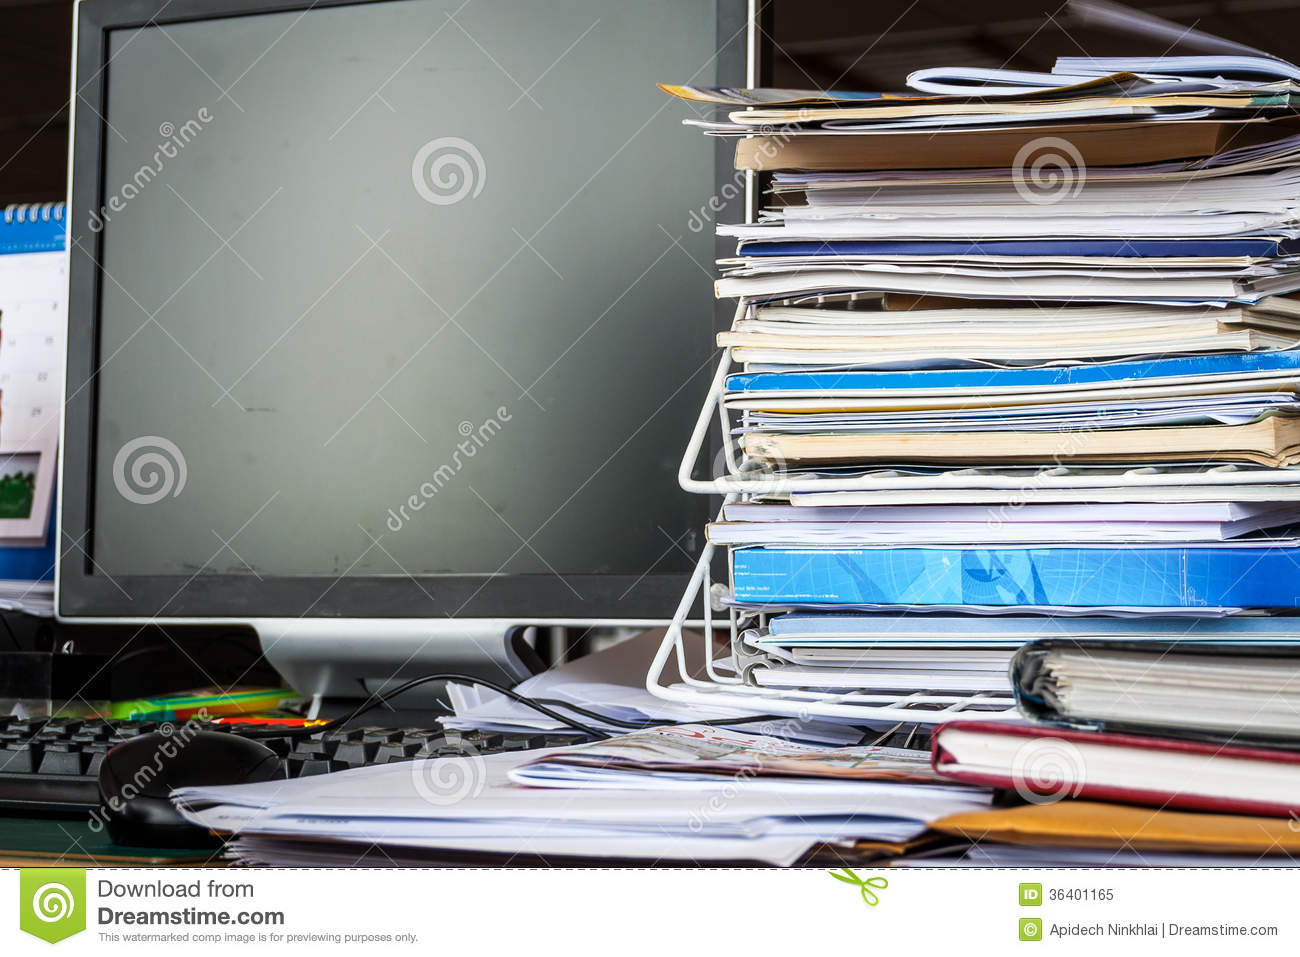 A Mess On Table In Office Royalty Free Stock Photo - Image: 36401165